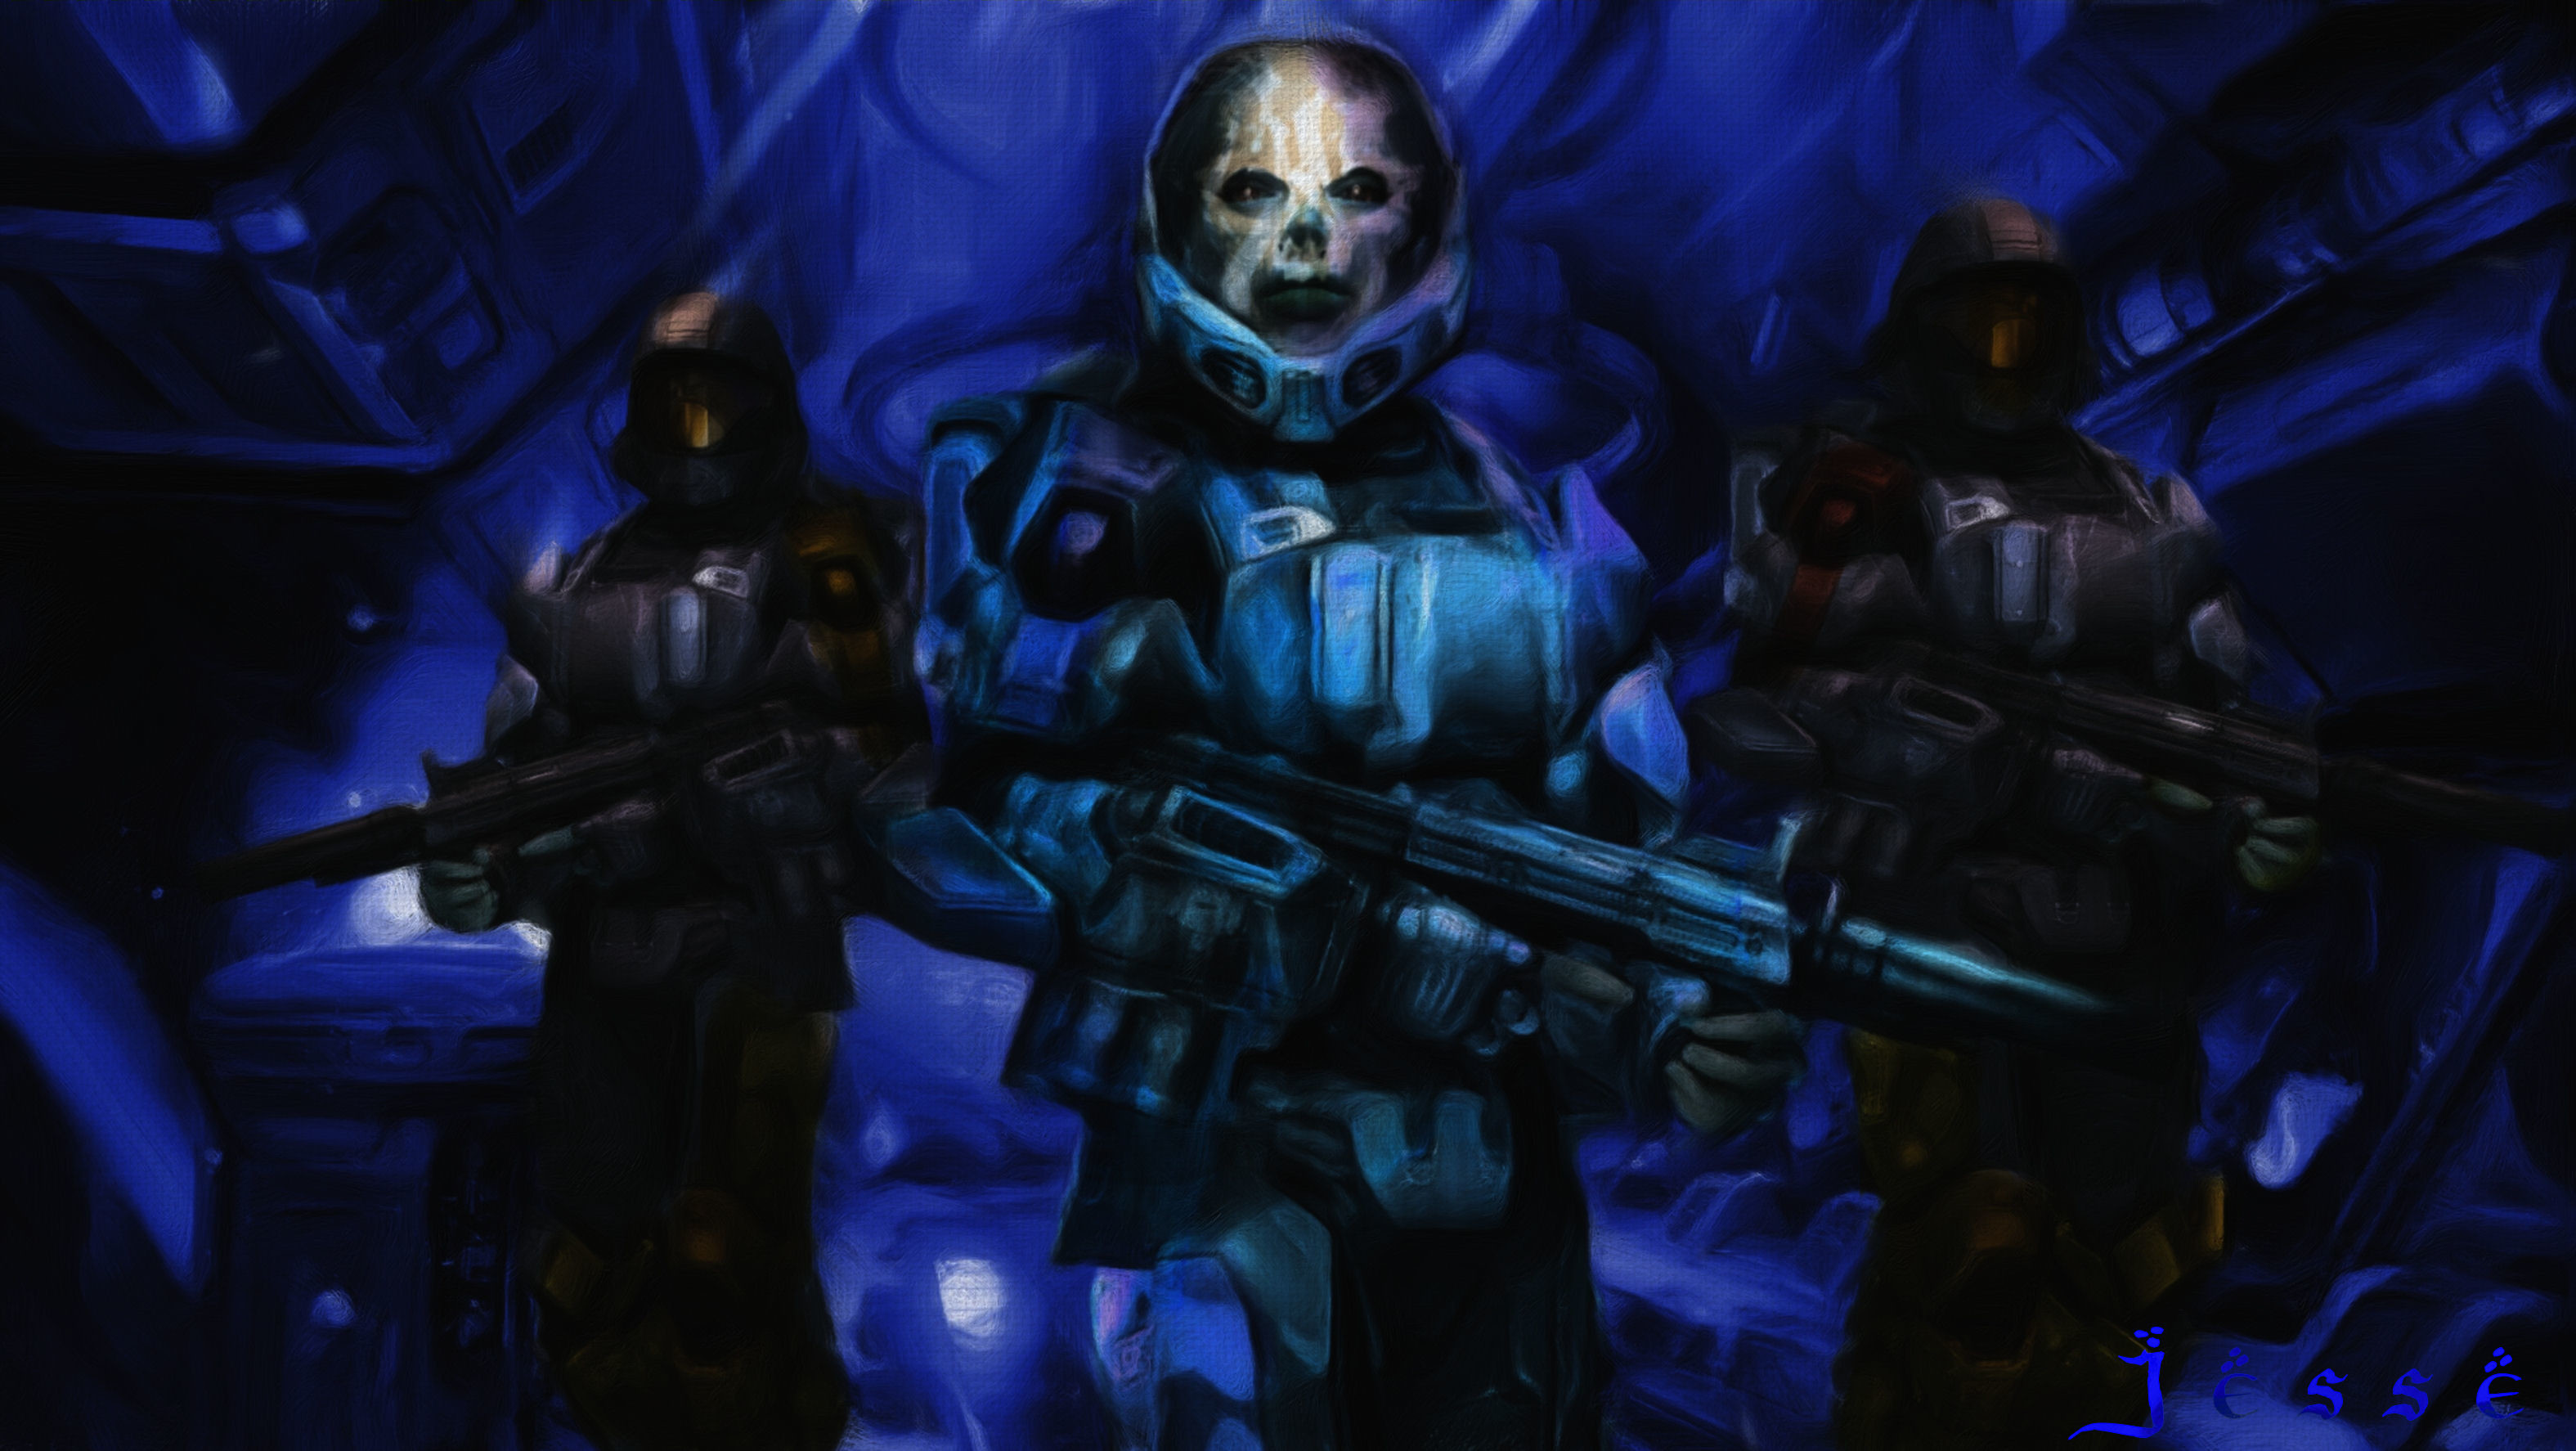 … Halo4.painted.wip.1done by DRIZZT–DO-URDEN